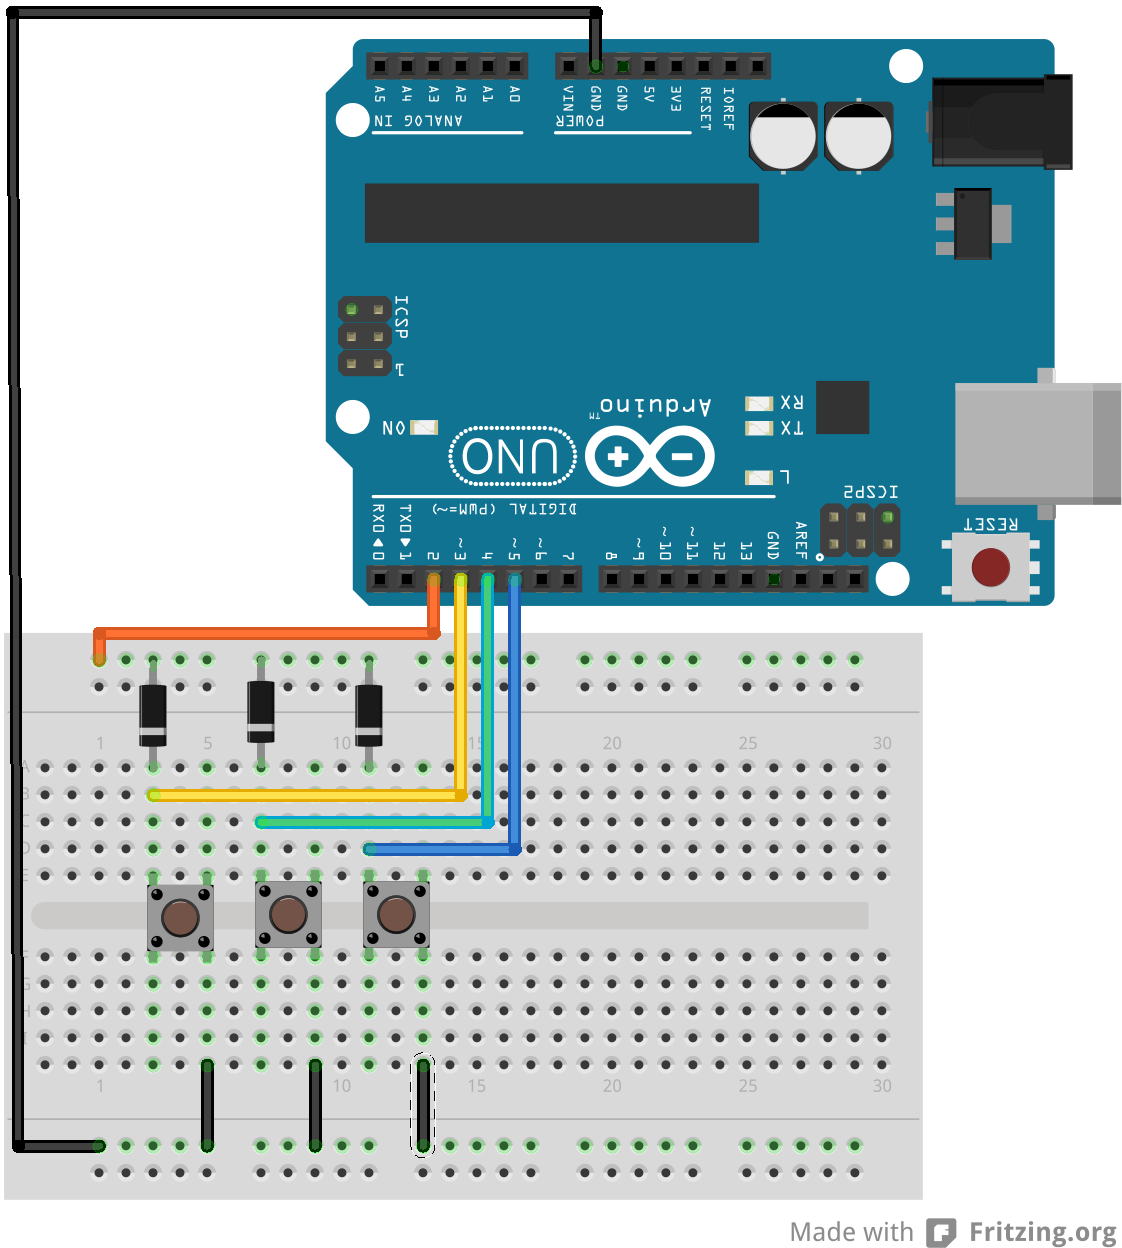 Pin change interrupt and push button debouncing